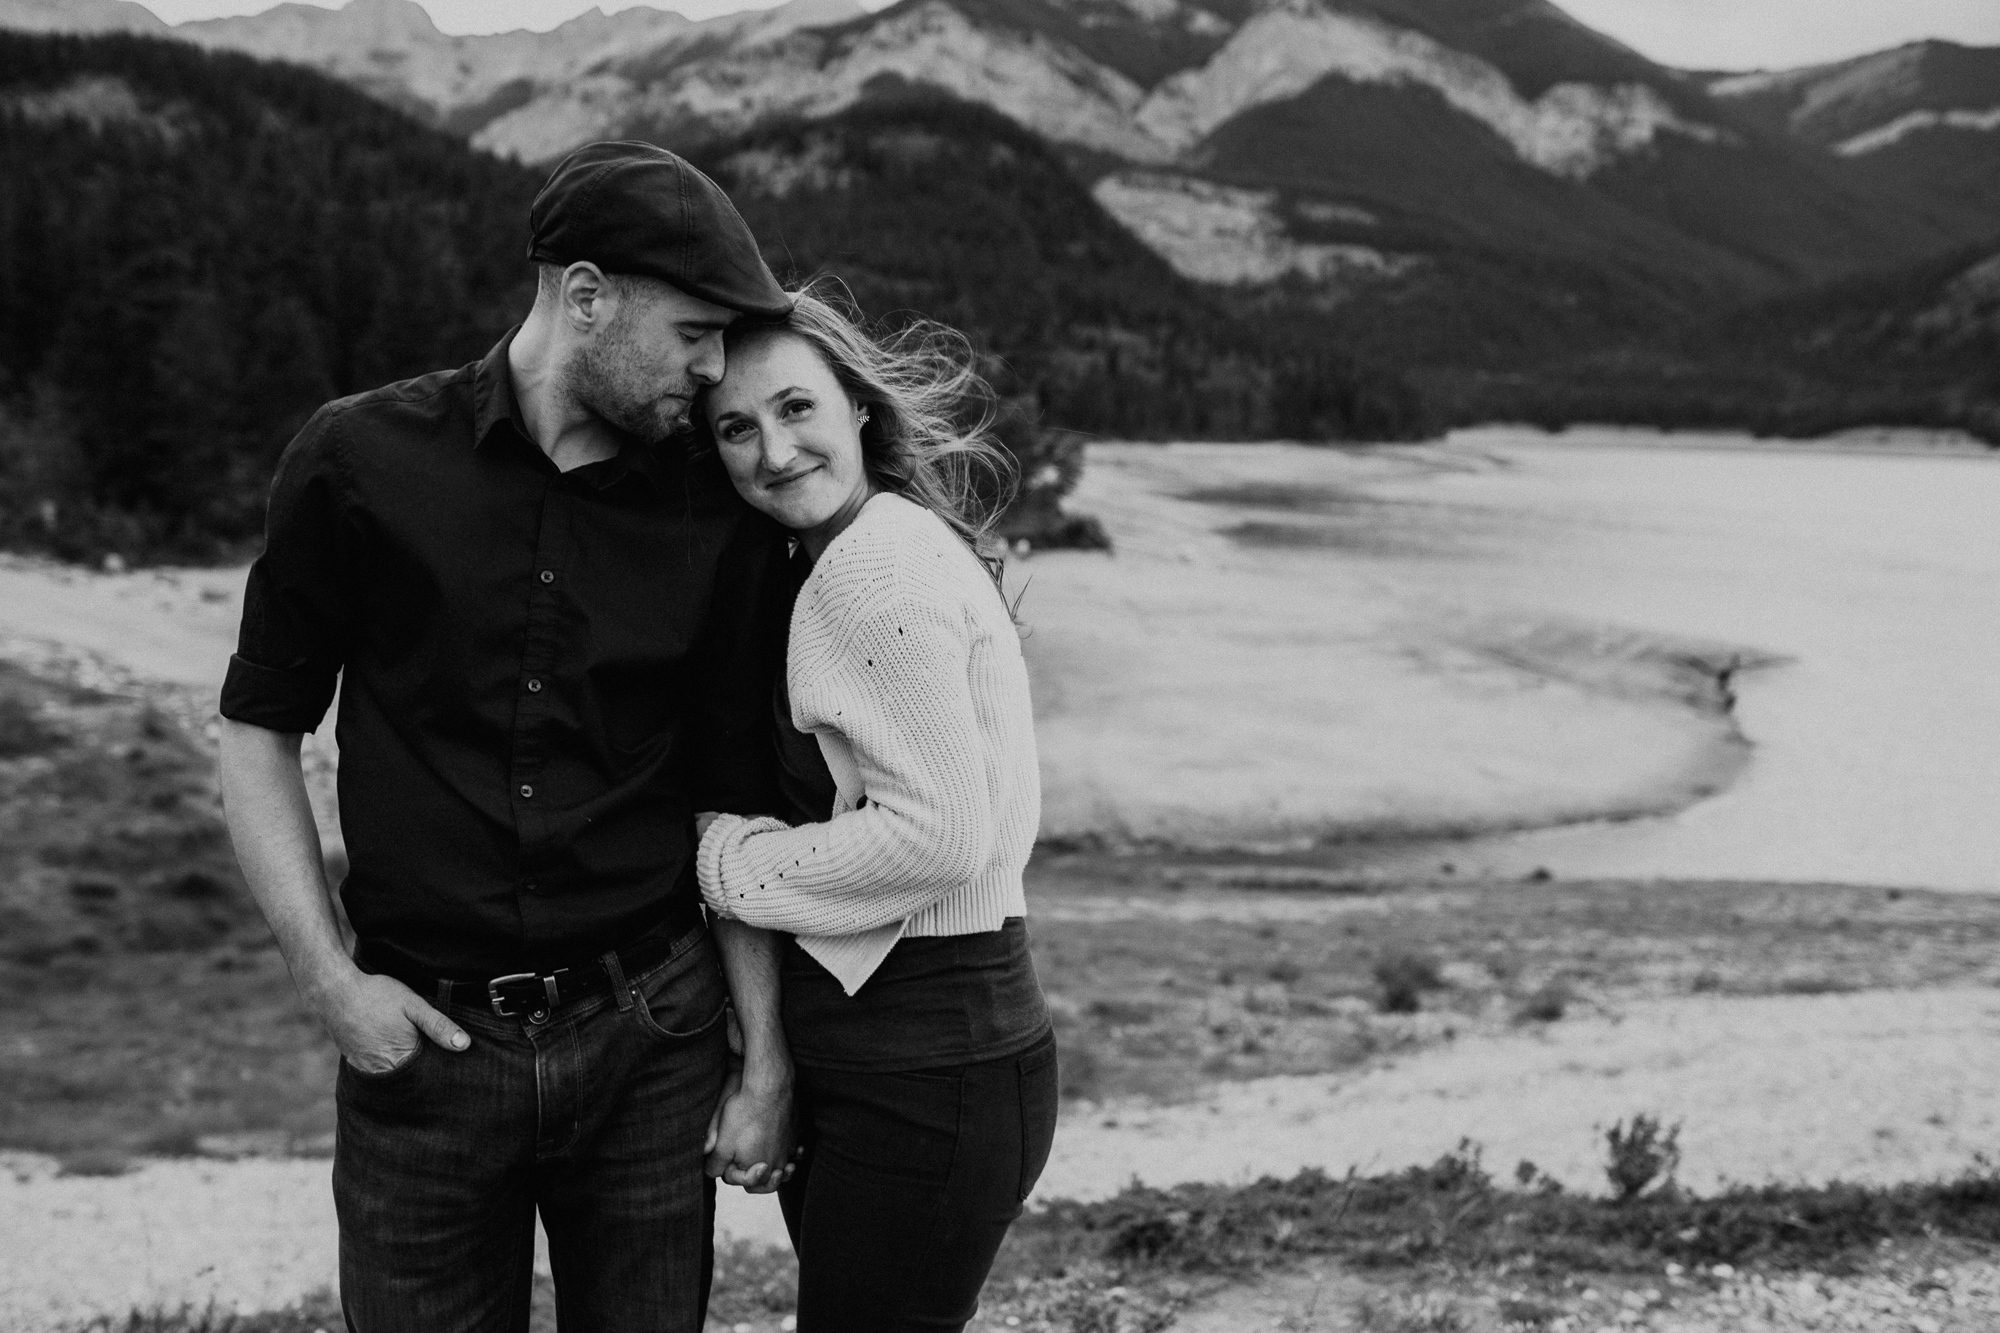 Kananaskis-engagement-session-photographer-jm-1-2.jpg